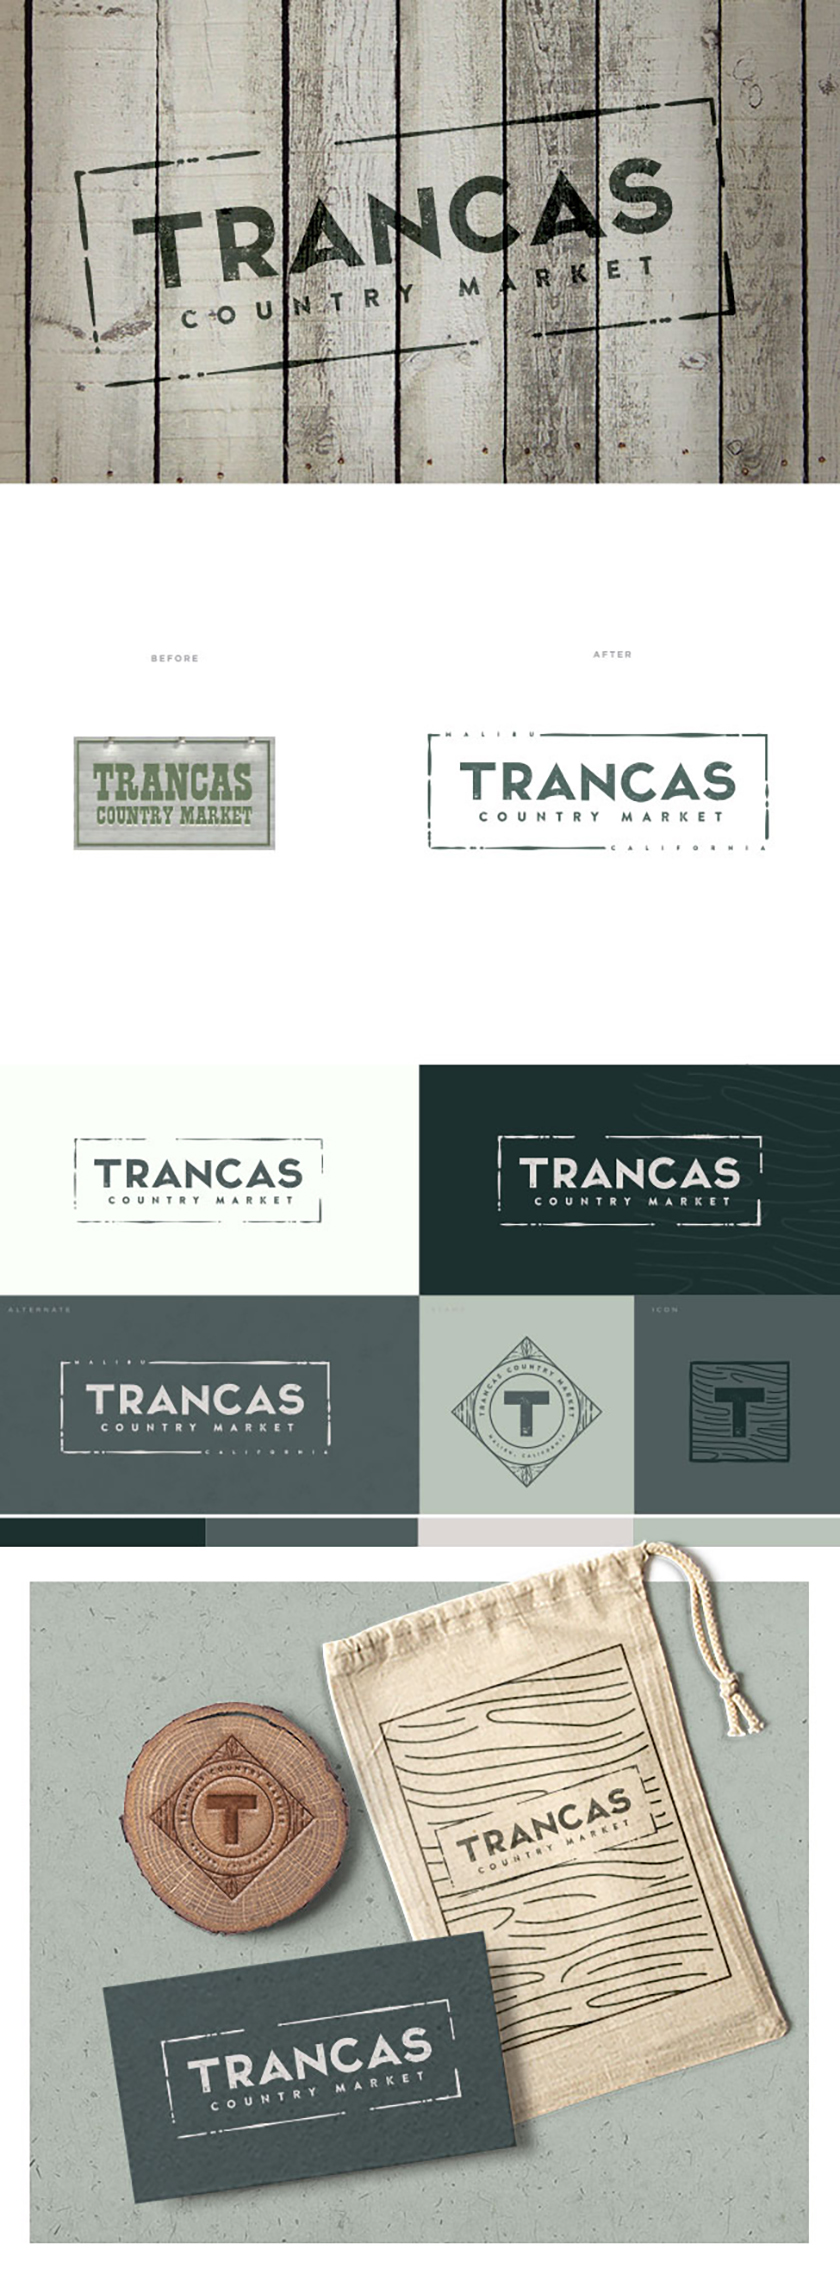 blog-trancas-POST_1.jpg